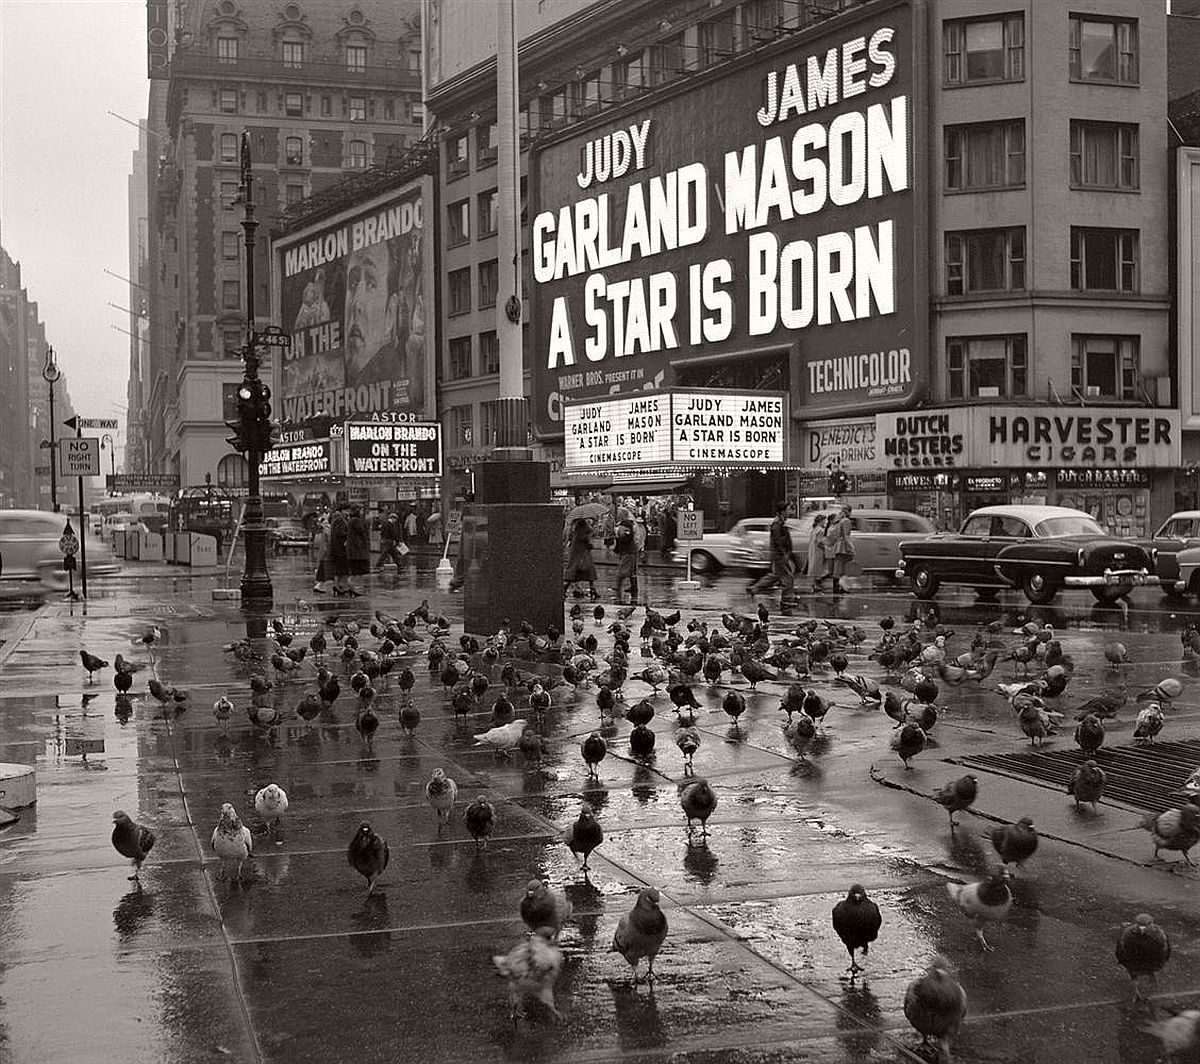 Pigeons gather in Times Square on a rainy day in 1954.